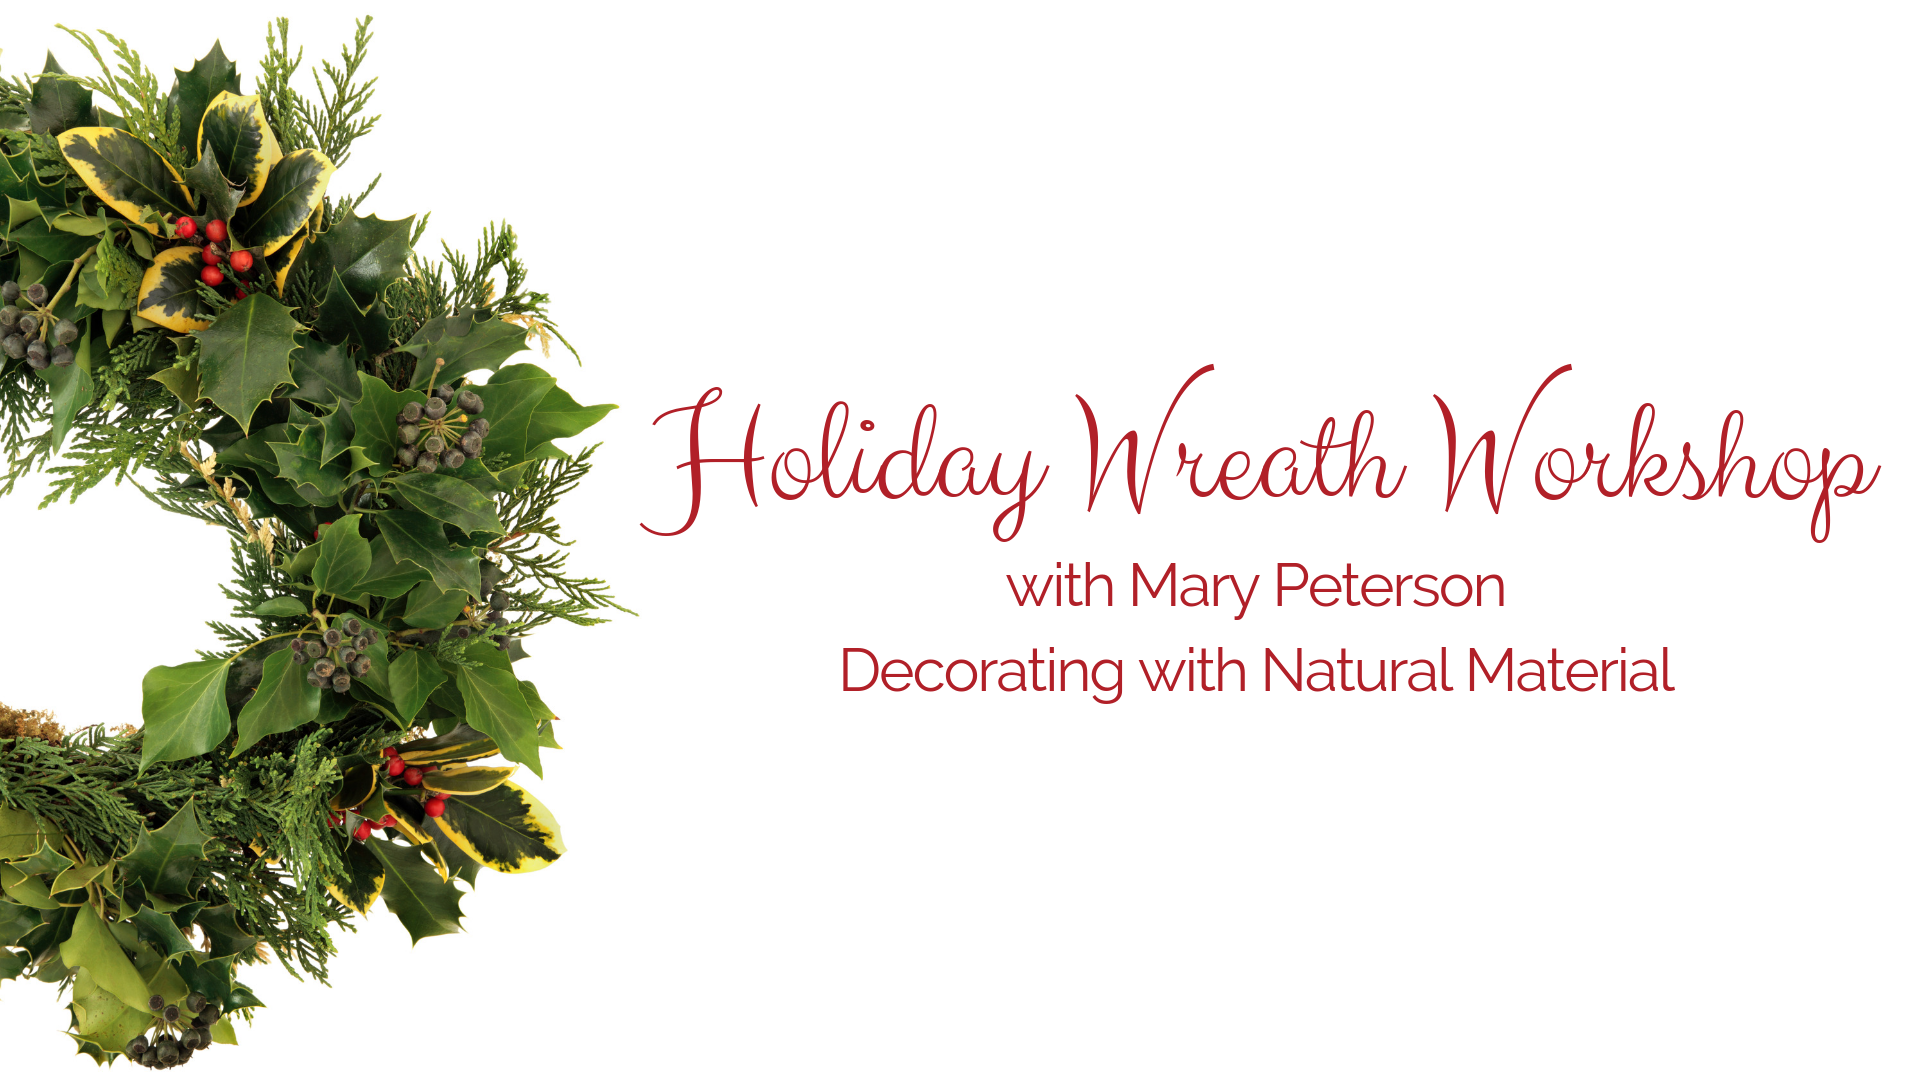 Holiday Wreath Workshop with Mary Peterson: Decorating with Natural Material